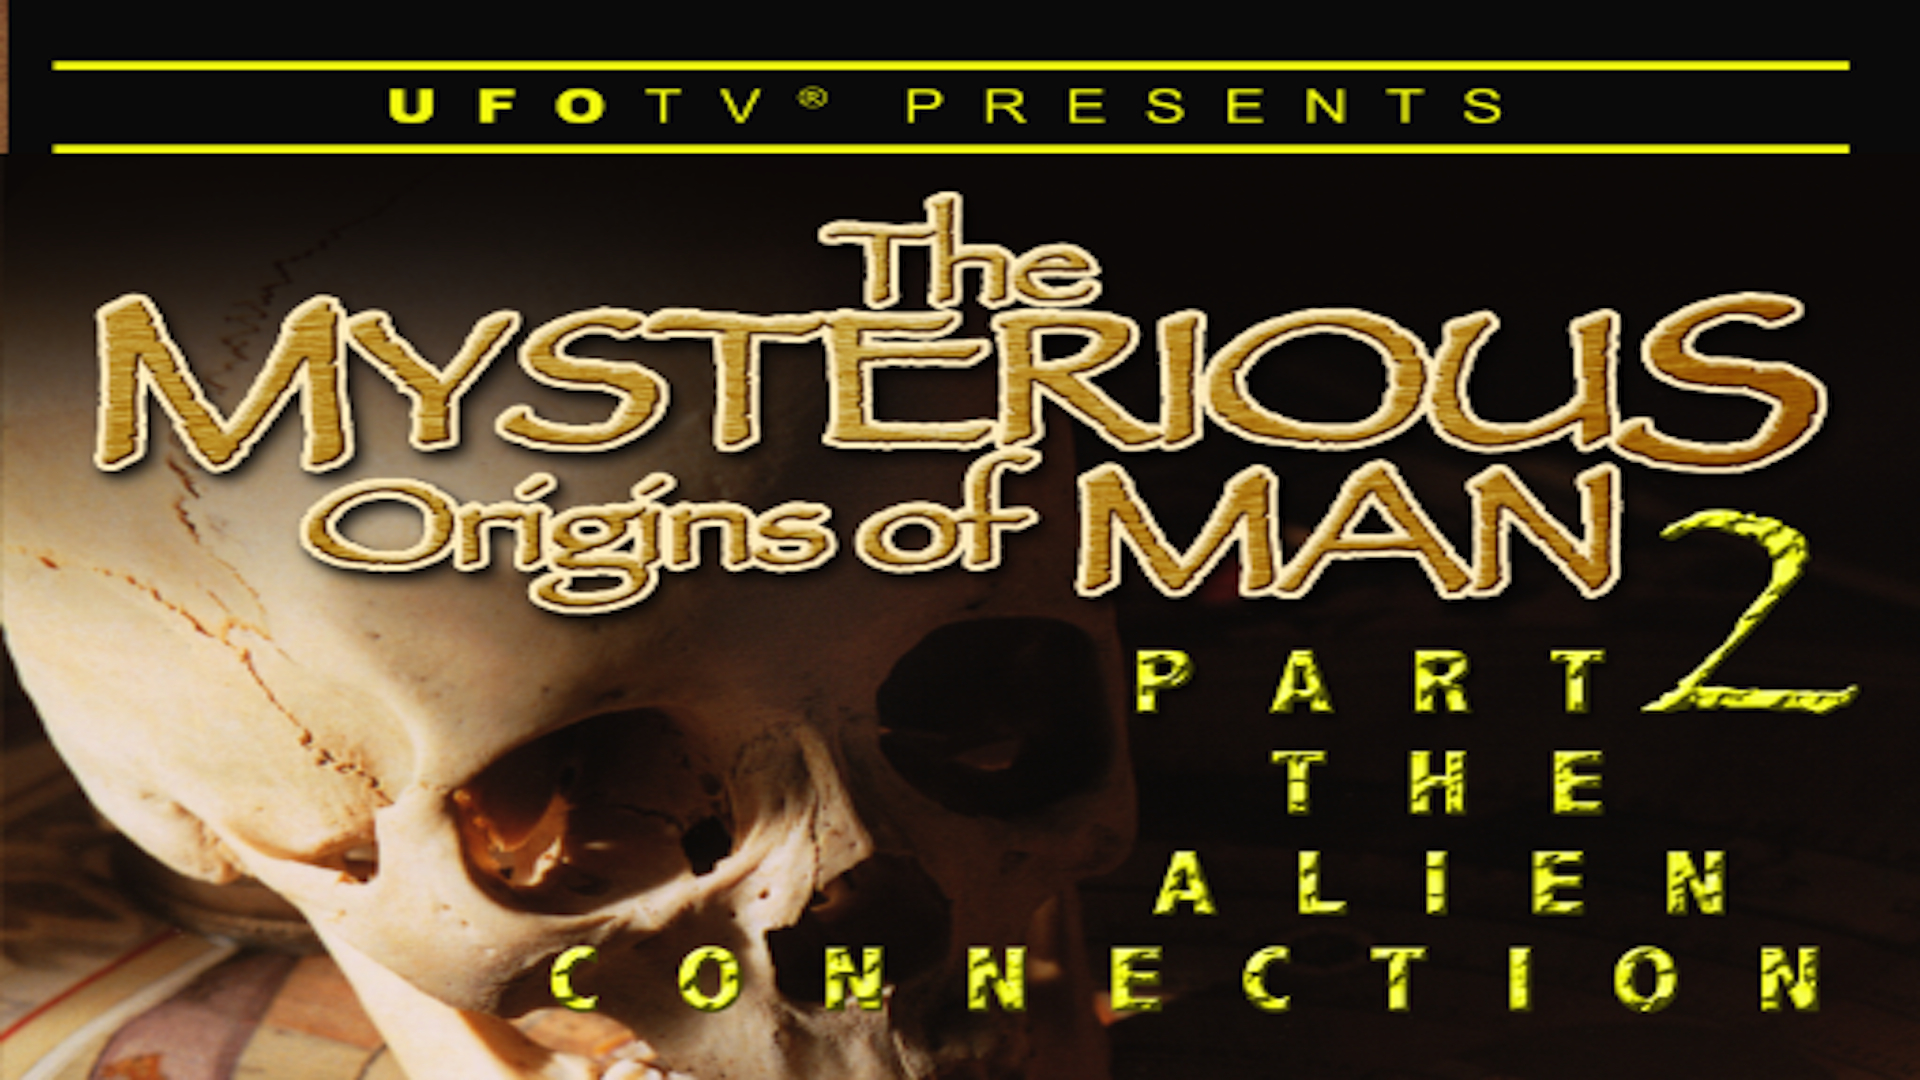 UFOTV Presents - The Mysterious Origins of Man Part 2 - The Alien Connection